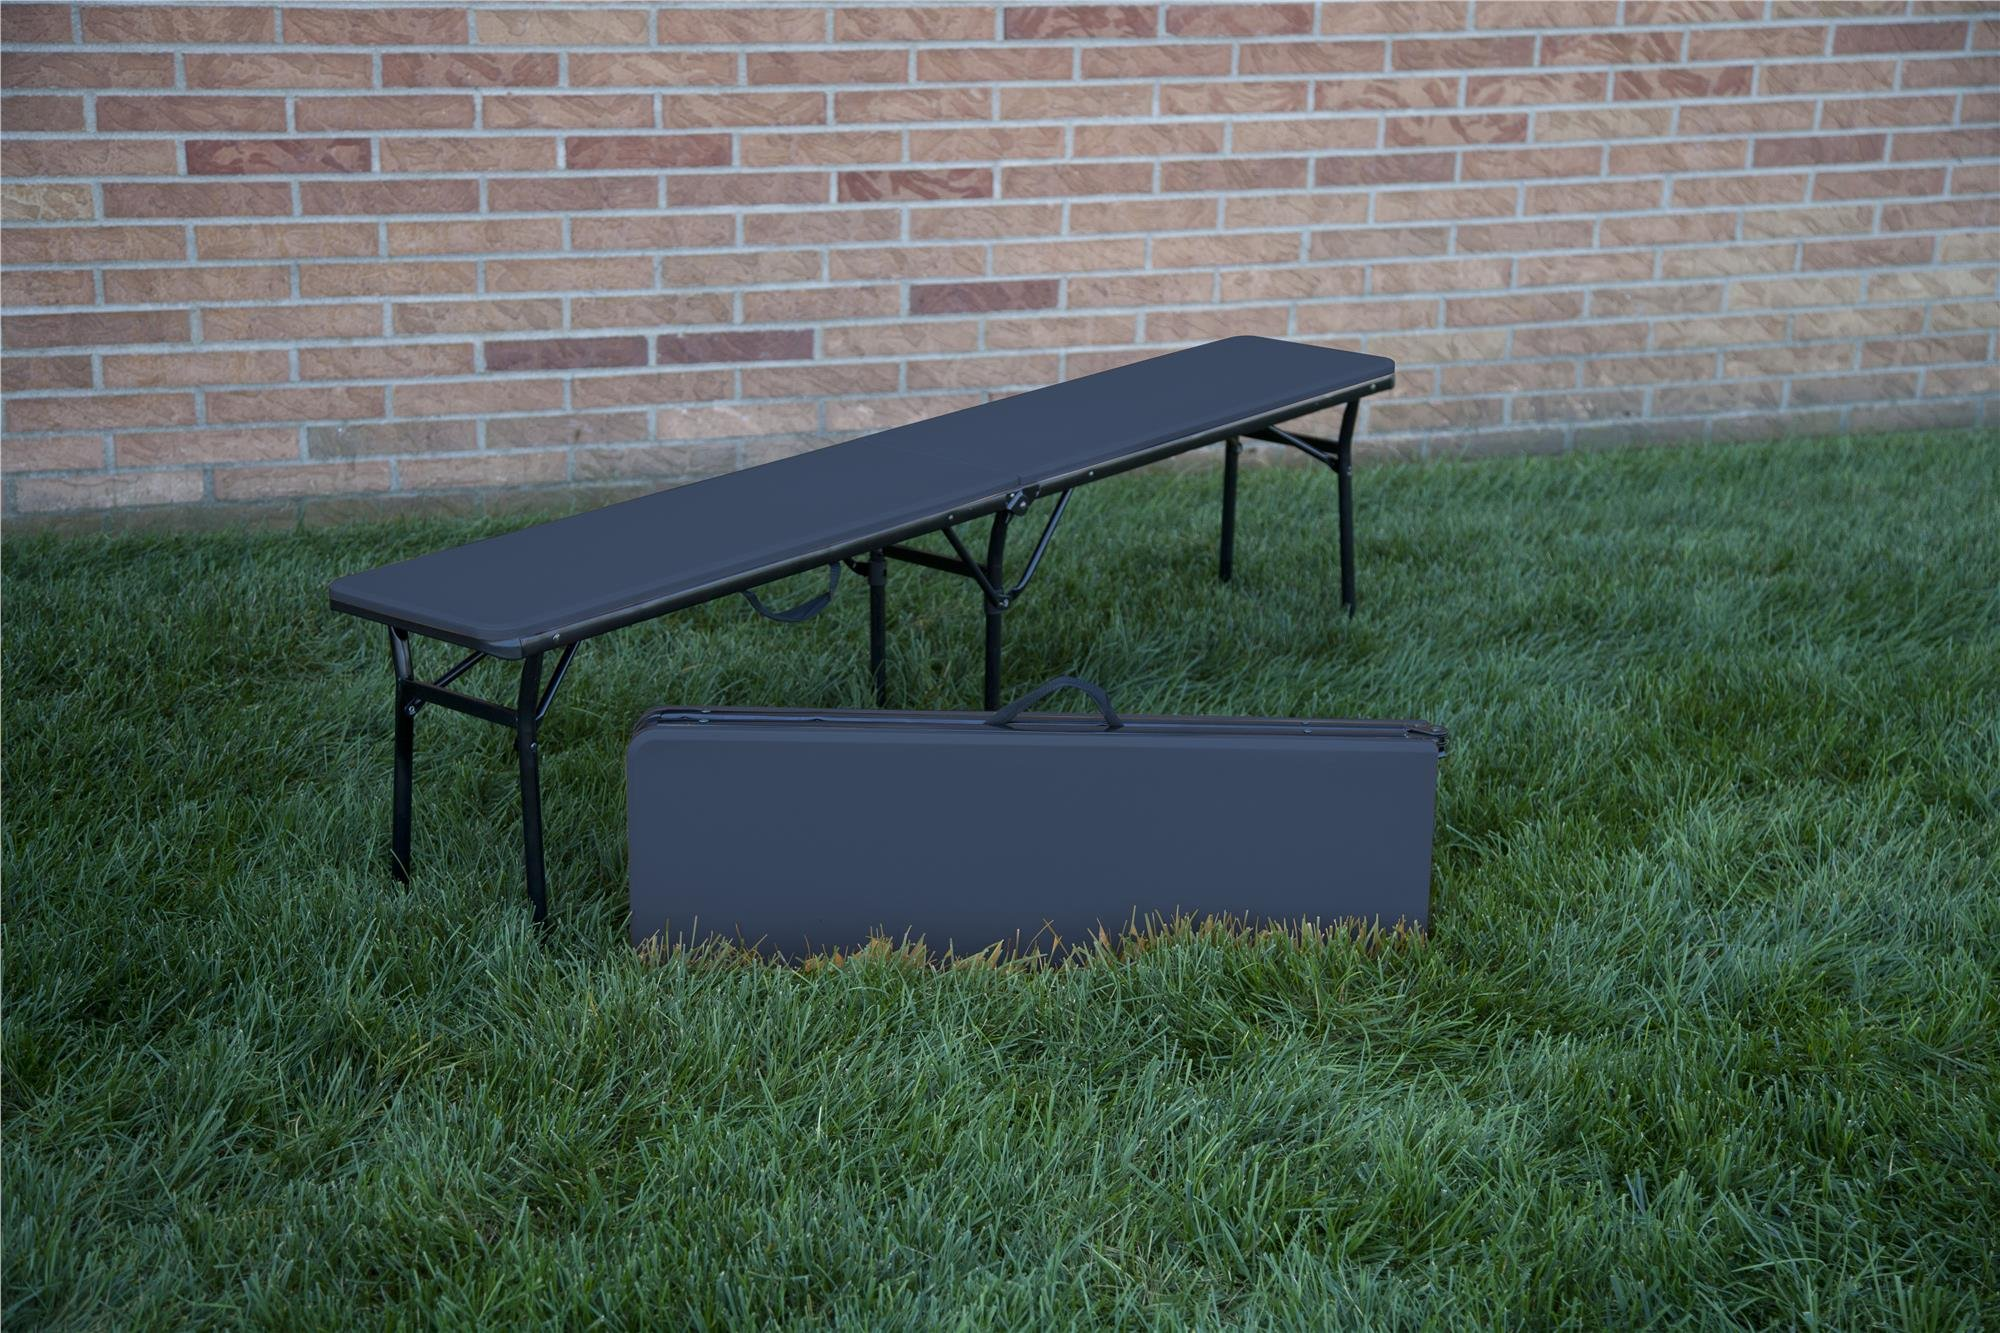 COSCO 6 ft. Indoor Outdoor Center Fold Tailgate Bench with Carrying Handle, Dark Blue Bench Top, Black Frame, 2-pack by Cosco Outdoor Living (Image #11)